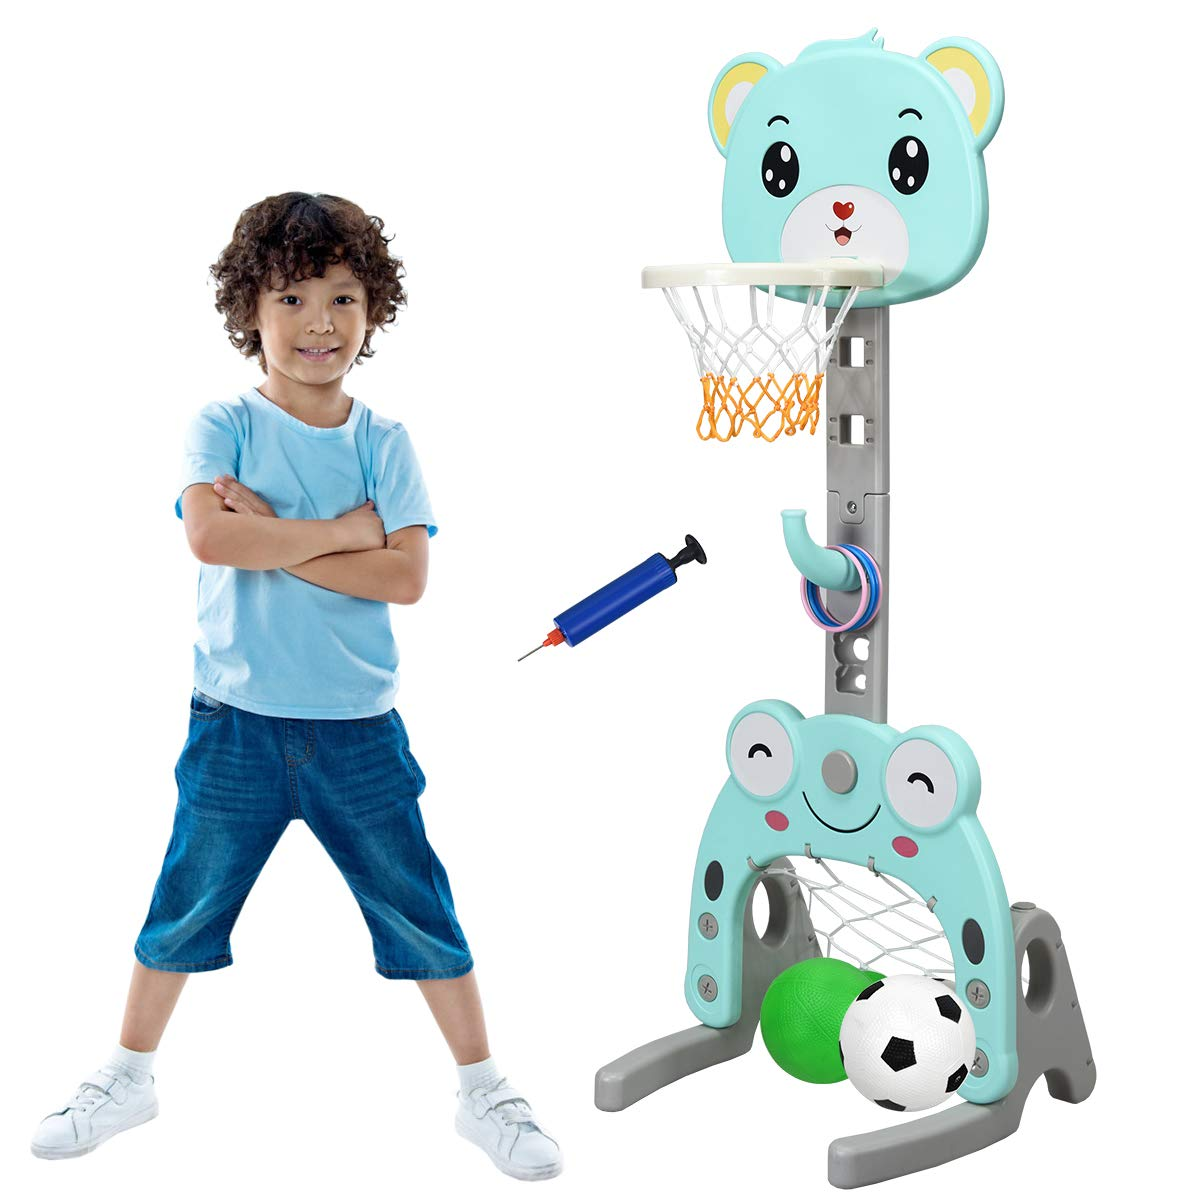 Costzon Basketball Hoop Set Stand, Kids 3-in-1 Sports Activity Center, Adjustable Height 4.7Ft-5.2Ft, Basketball Stand with Darts and Ring Toss Play Set, Best Gift for Kids (Lovely Bear) by Costzon